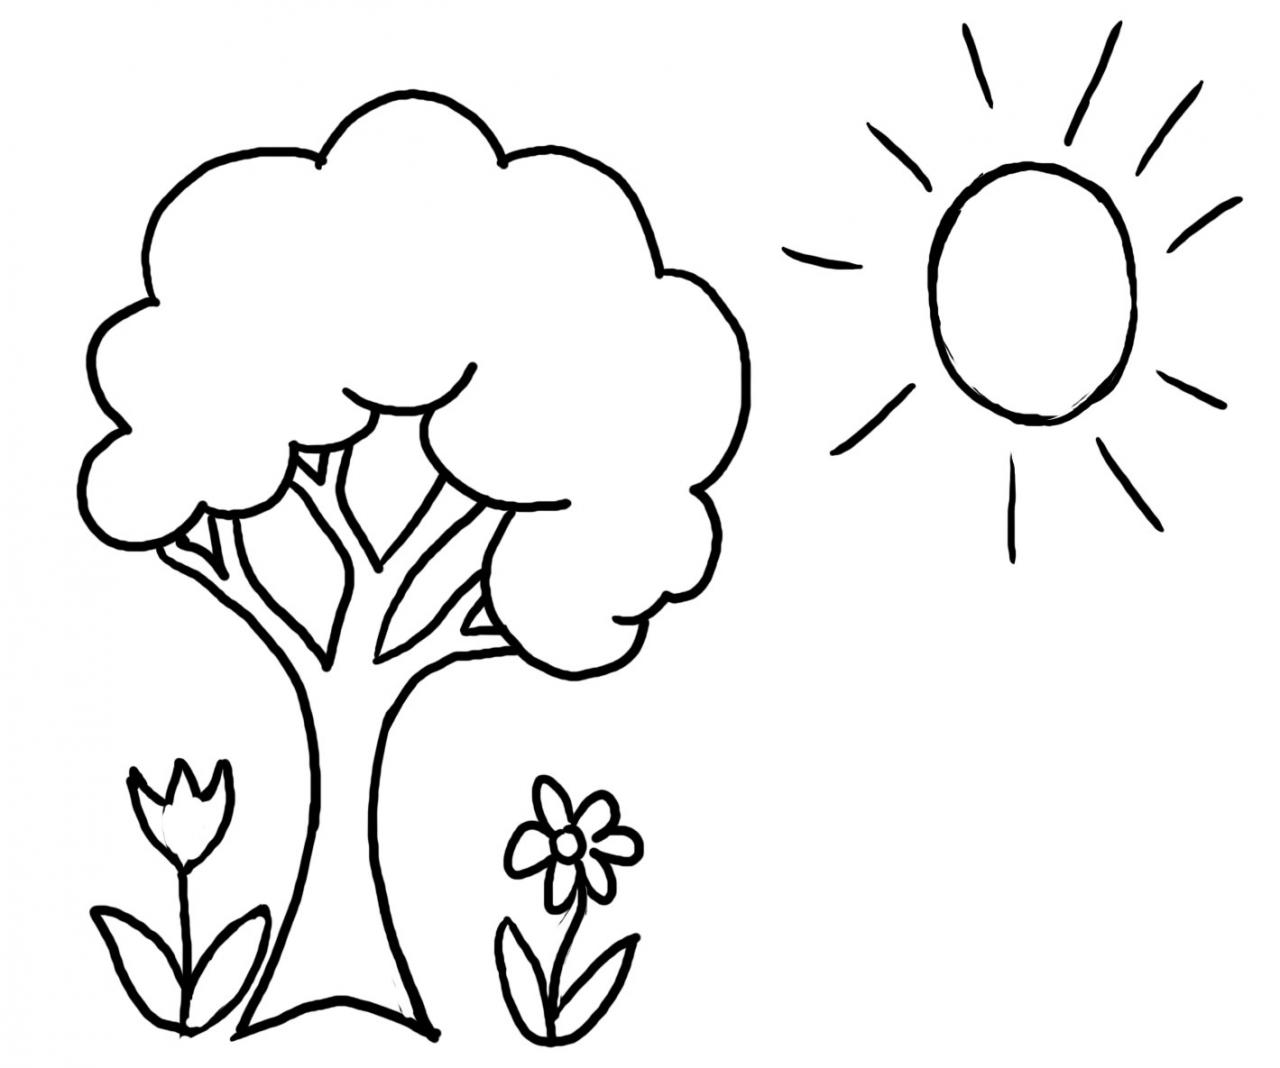 1280x1068 Sun Coloring Pages To Print Tree And Flowers Coloringstar